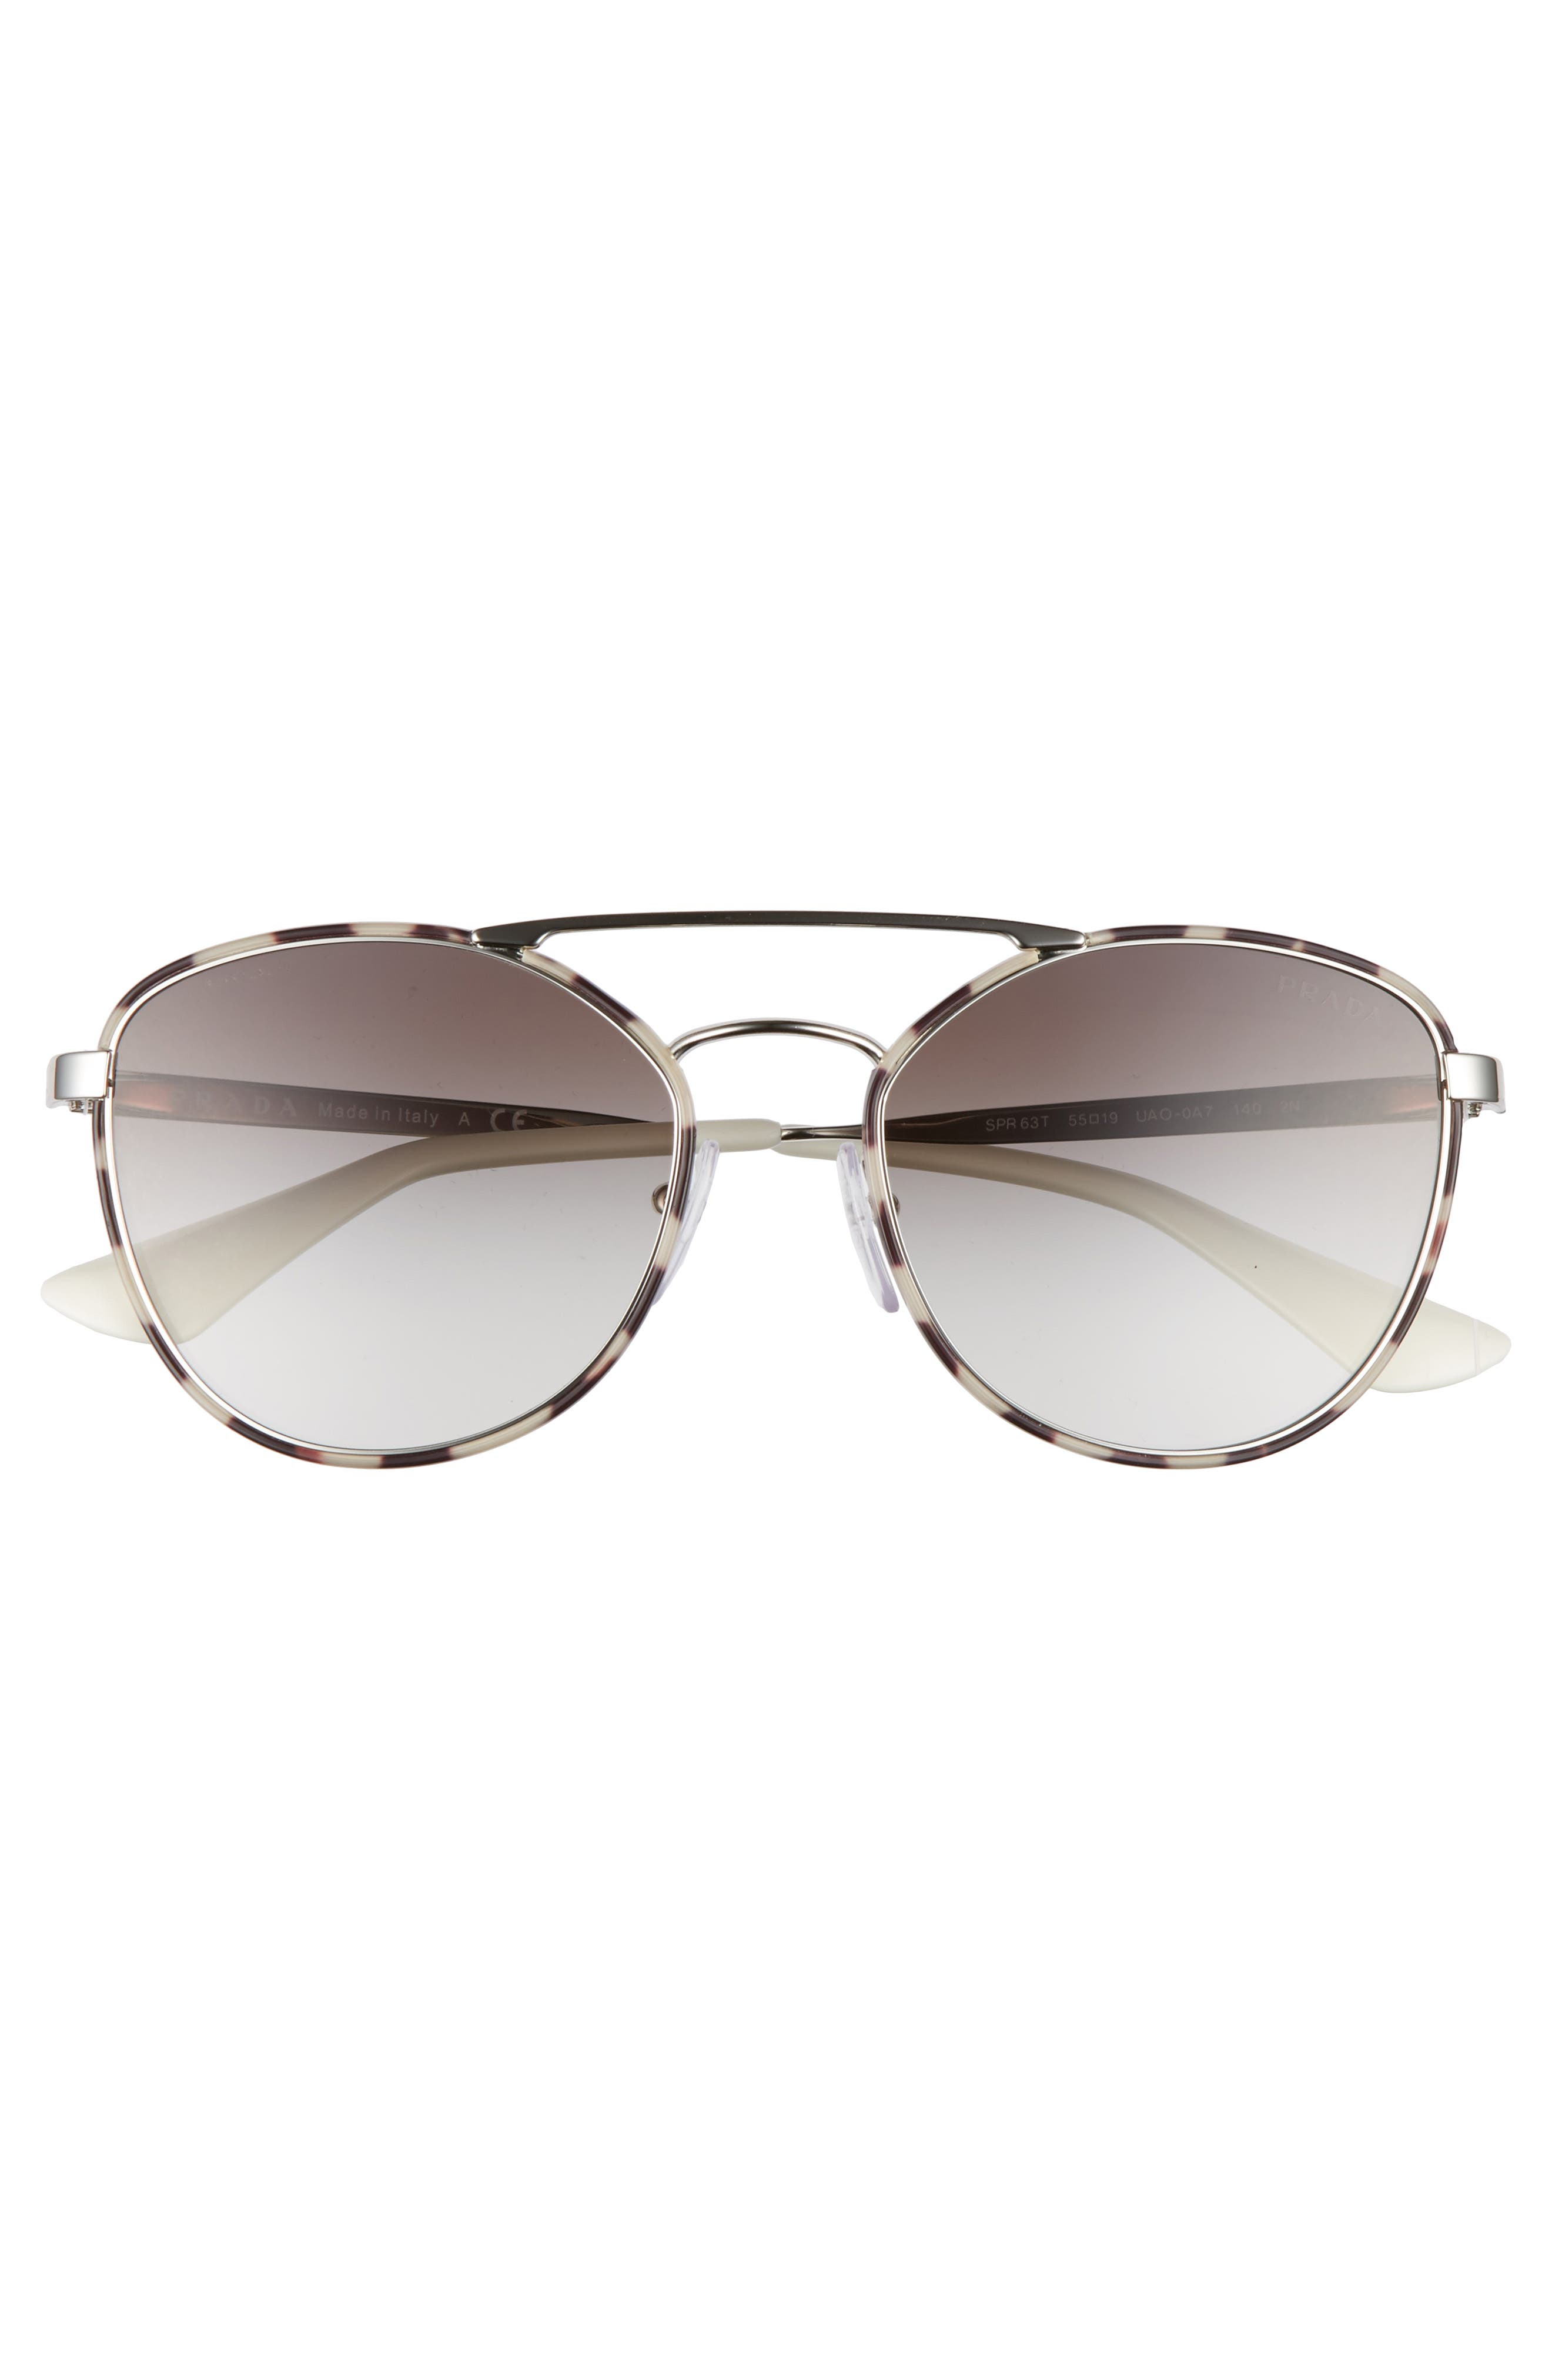 55mm Gradient Aviator Sunglasses,                             Alternate thumbnail 2, color,                             Spotty Brown